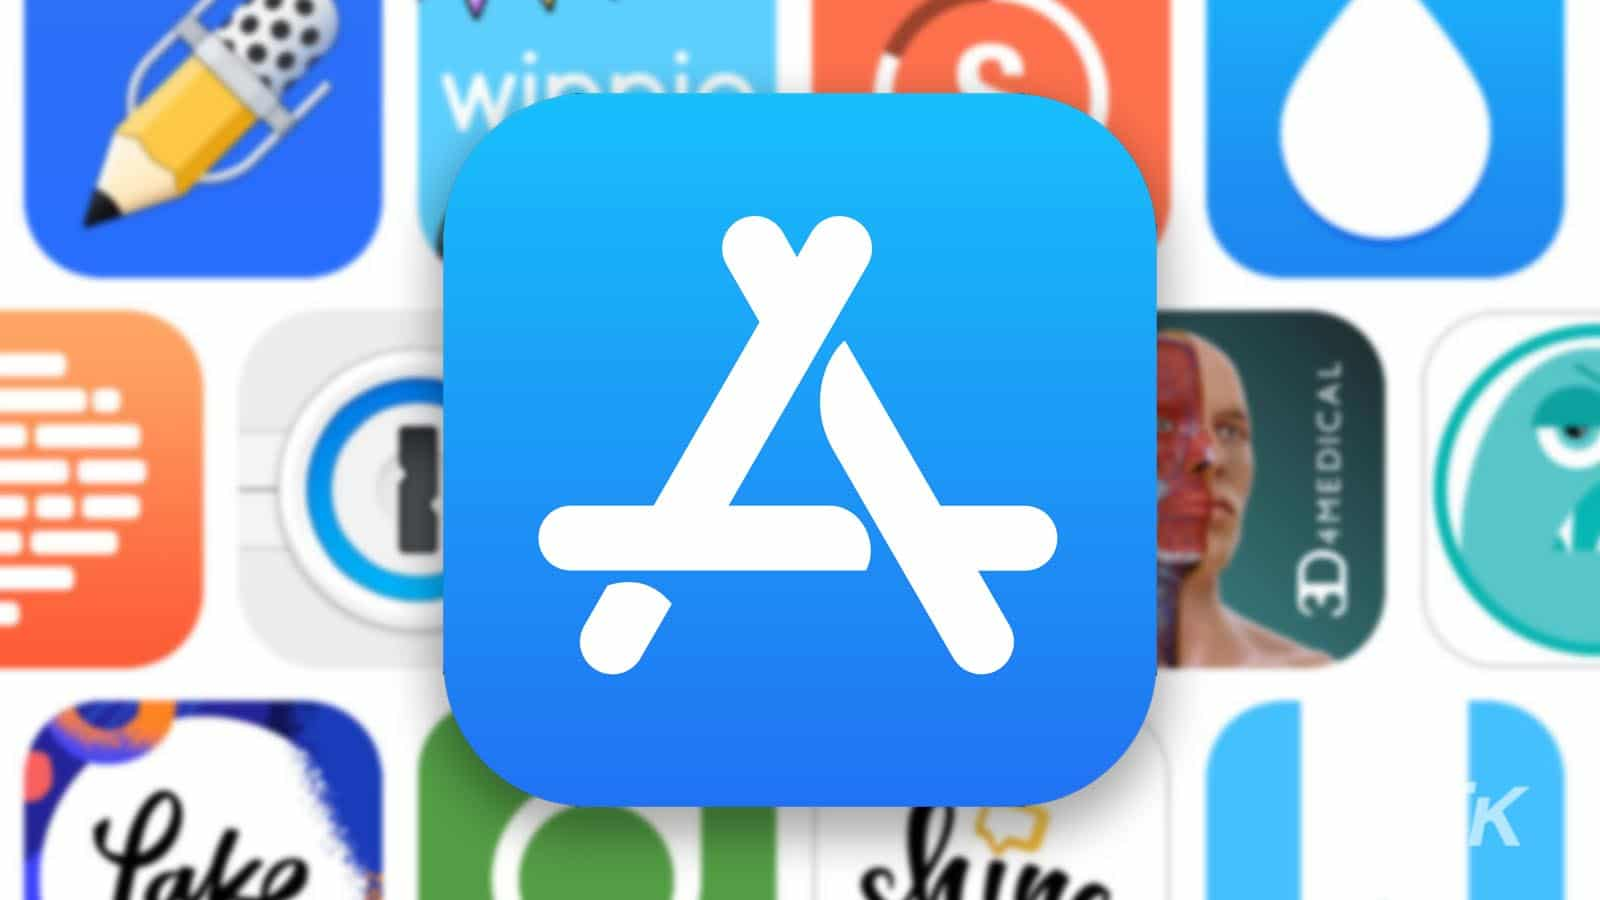 apple app store logo with blurred background